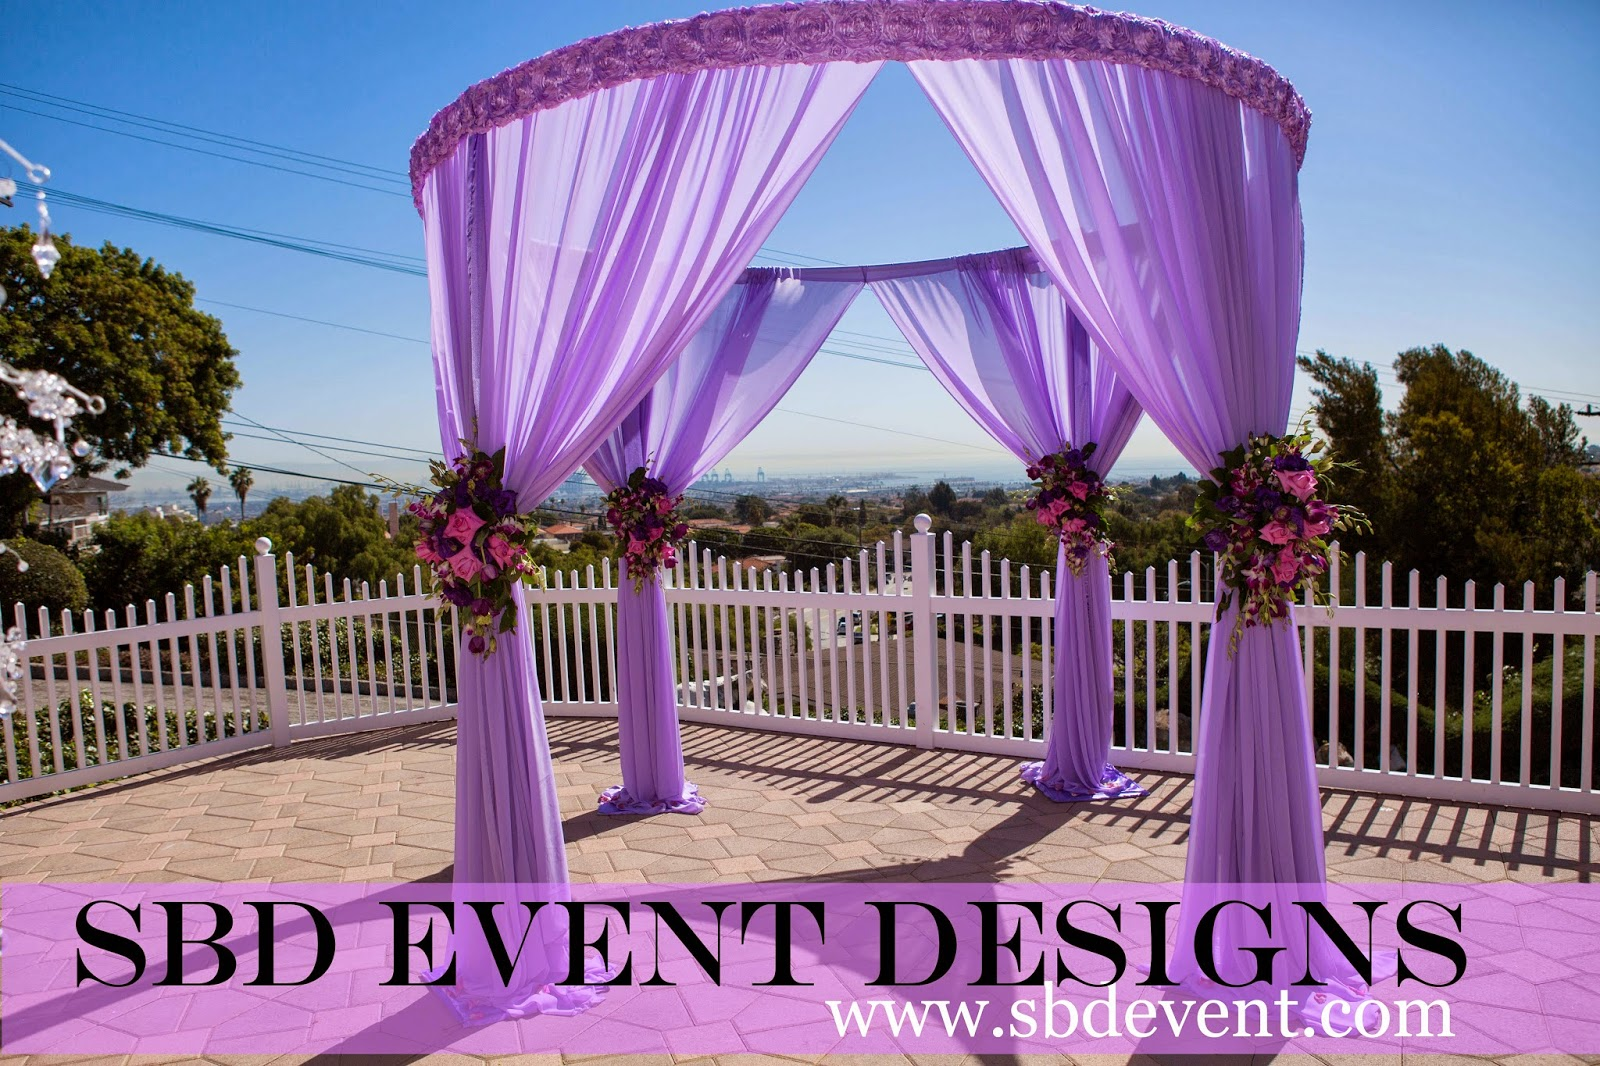 4 Post Round Canopyu0027 comes in different colors and height. We will customize it with Rhinestone Bands or fresh Flowers we will add a chandelier if needed. & SBD Events - The Event Specialist: LA Harbor Lodge Weddings - SBD ...